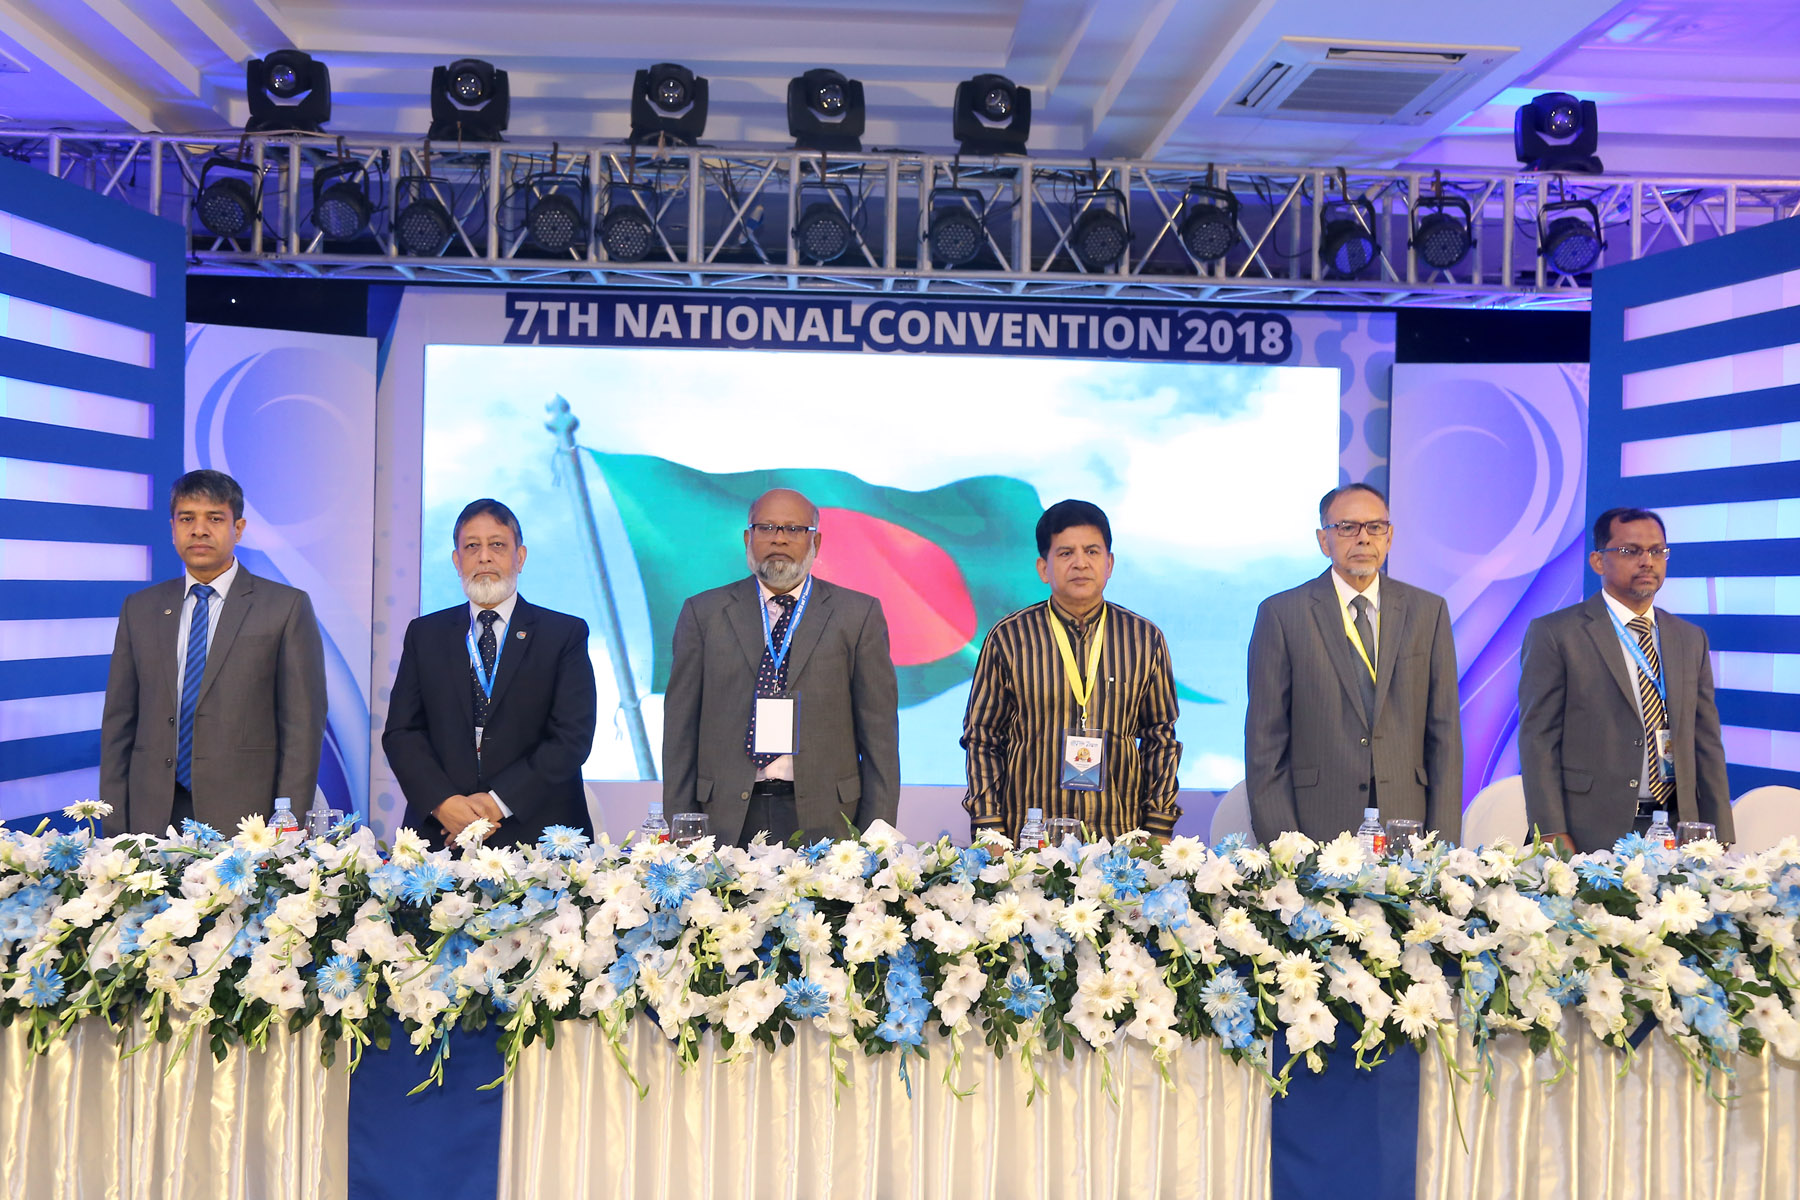 7th National Convention and 7th Convocation of ICSB